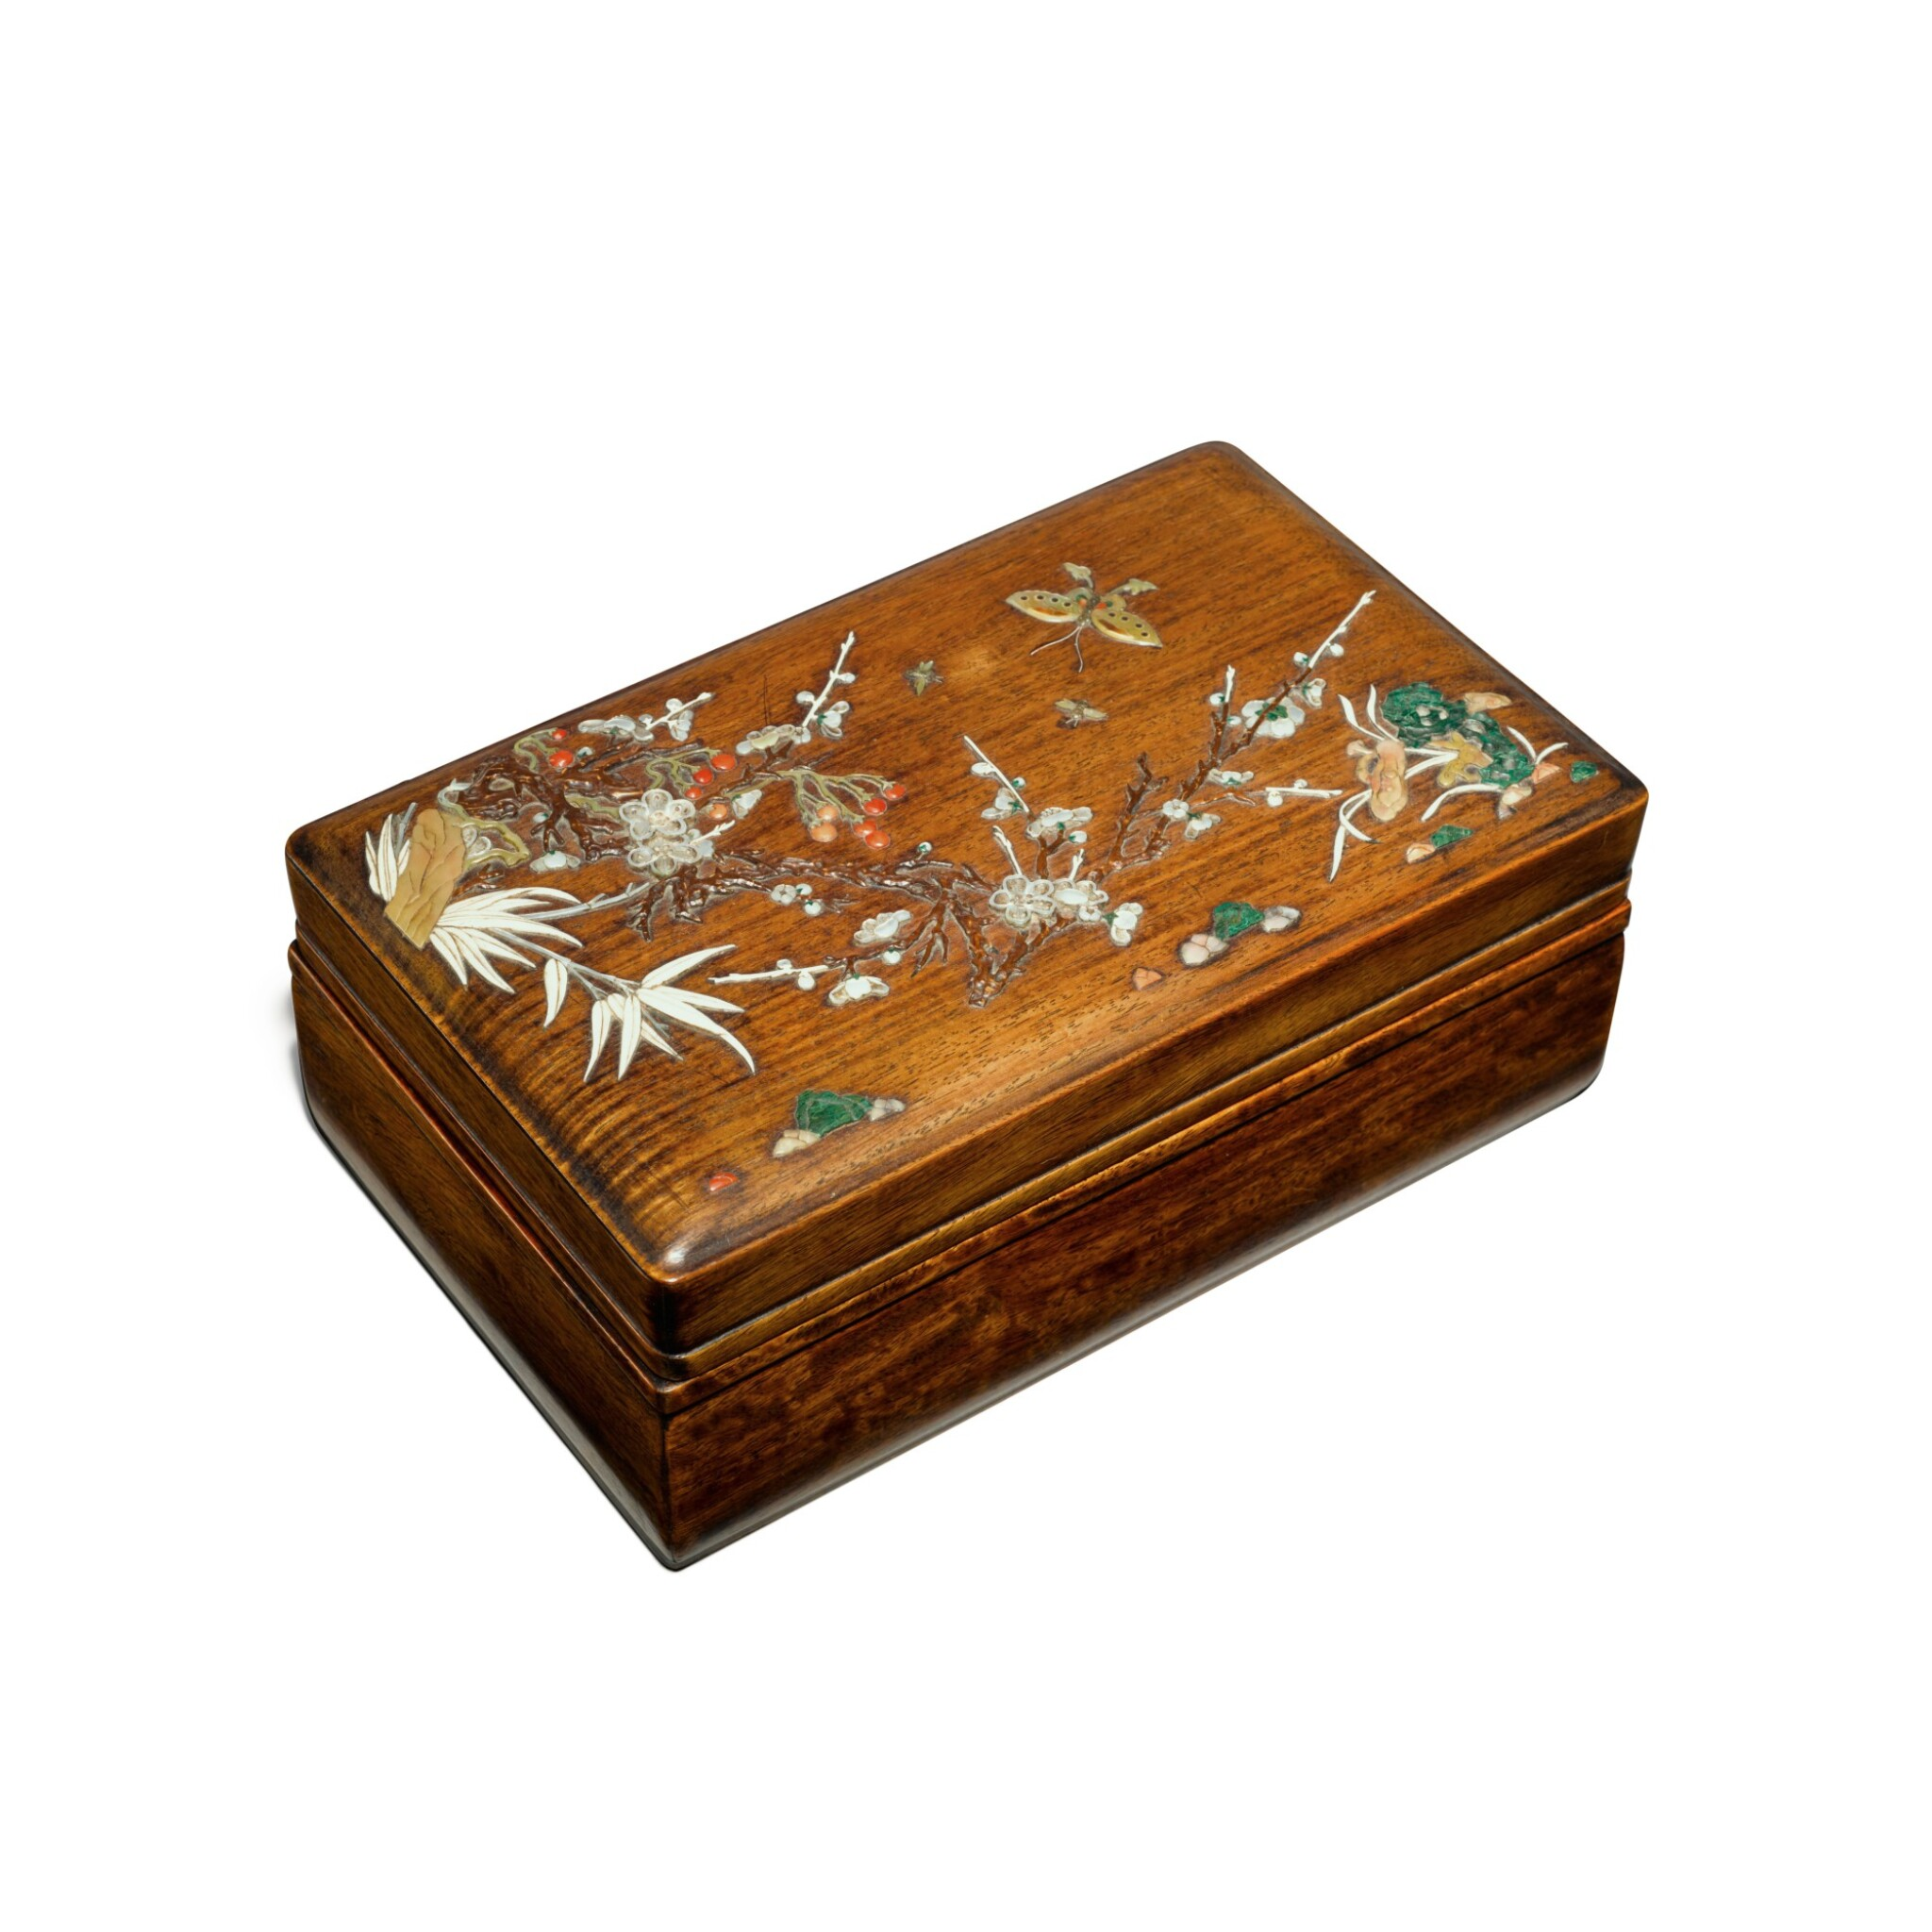 View full screen - View 1 of Lot 122. An embellished 'huanghuali' box and cover, Qing dynasty, 17th / 18th century   清十七 / 十八世紀 黃花梨嵌寶花蝶圖蓋盒.